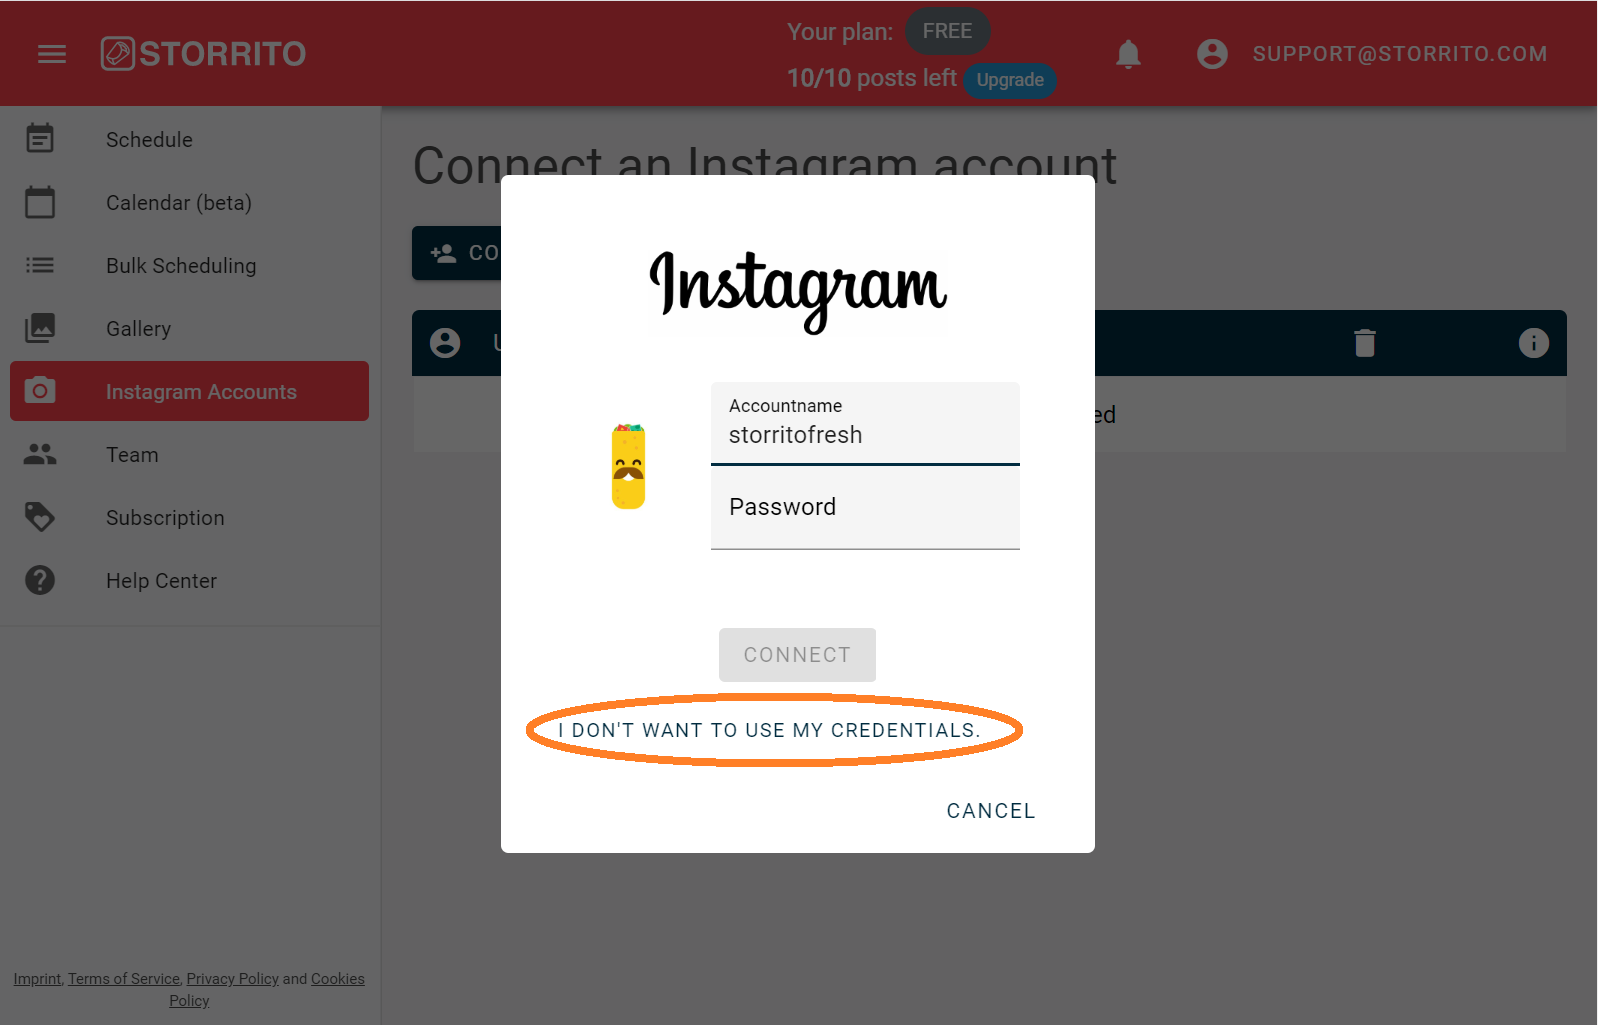 How to get the Instagram sessionid cookie   Storrito Blog